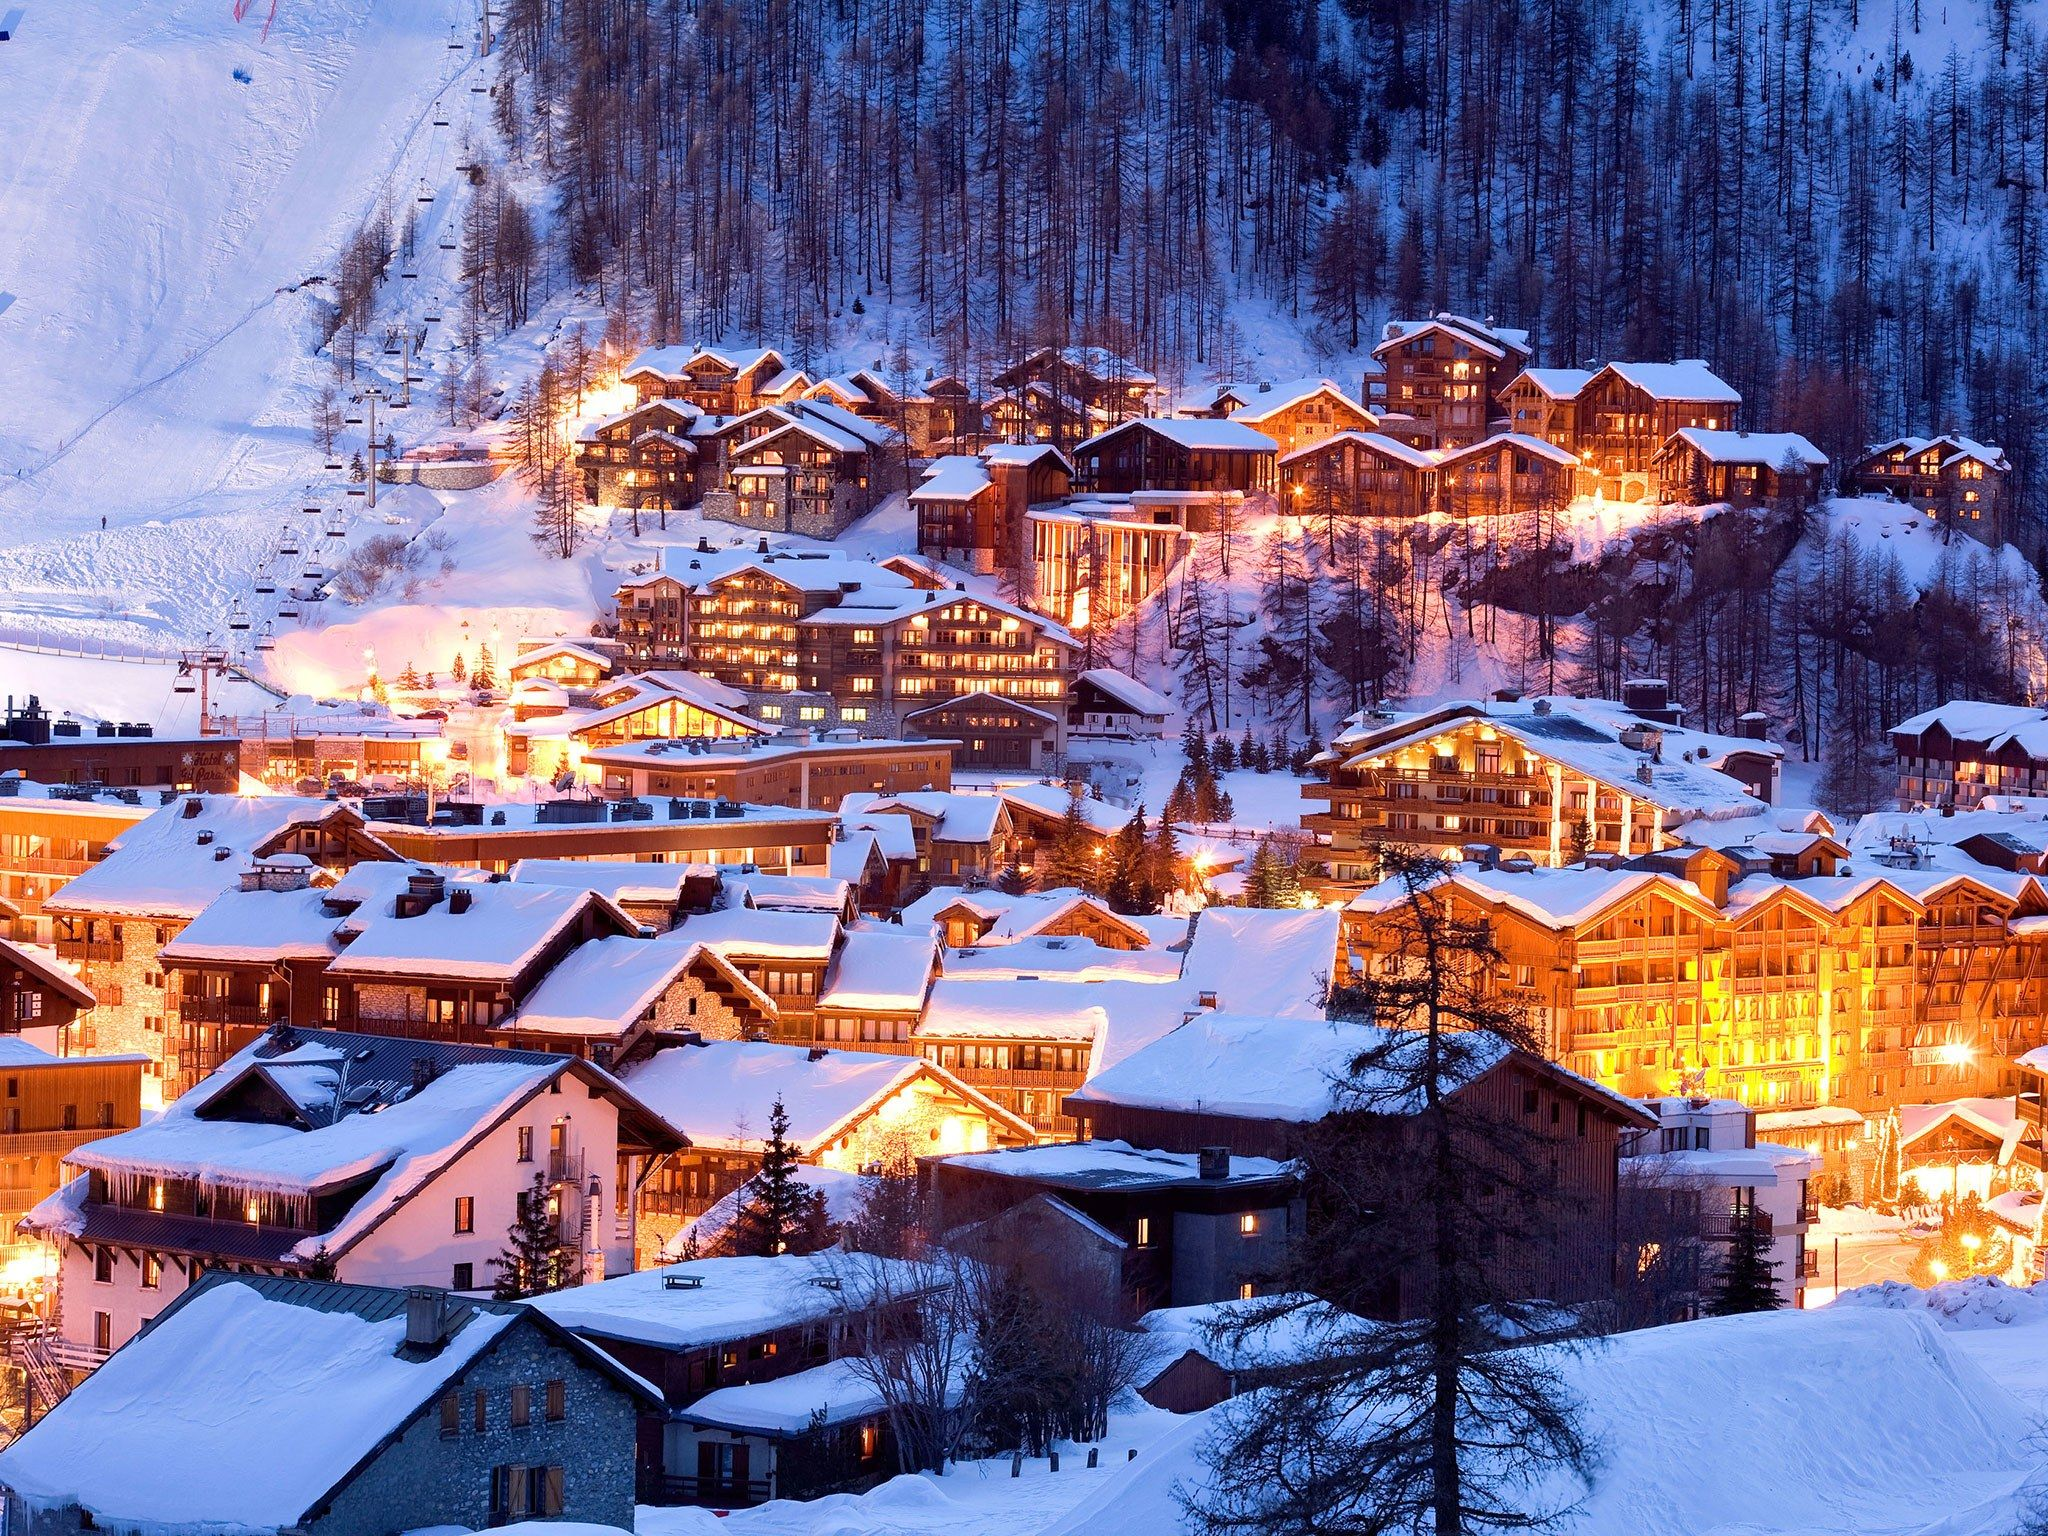 the best ski resorts in europe, according to our readers | travel